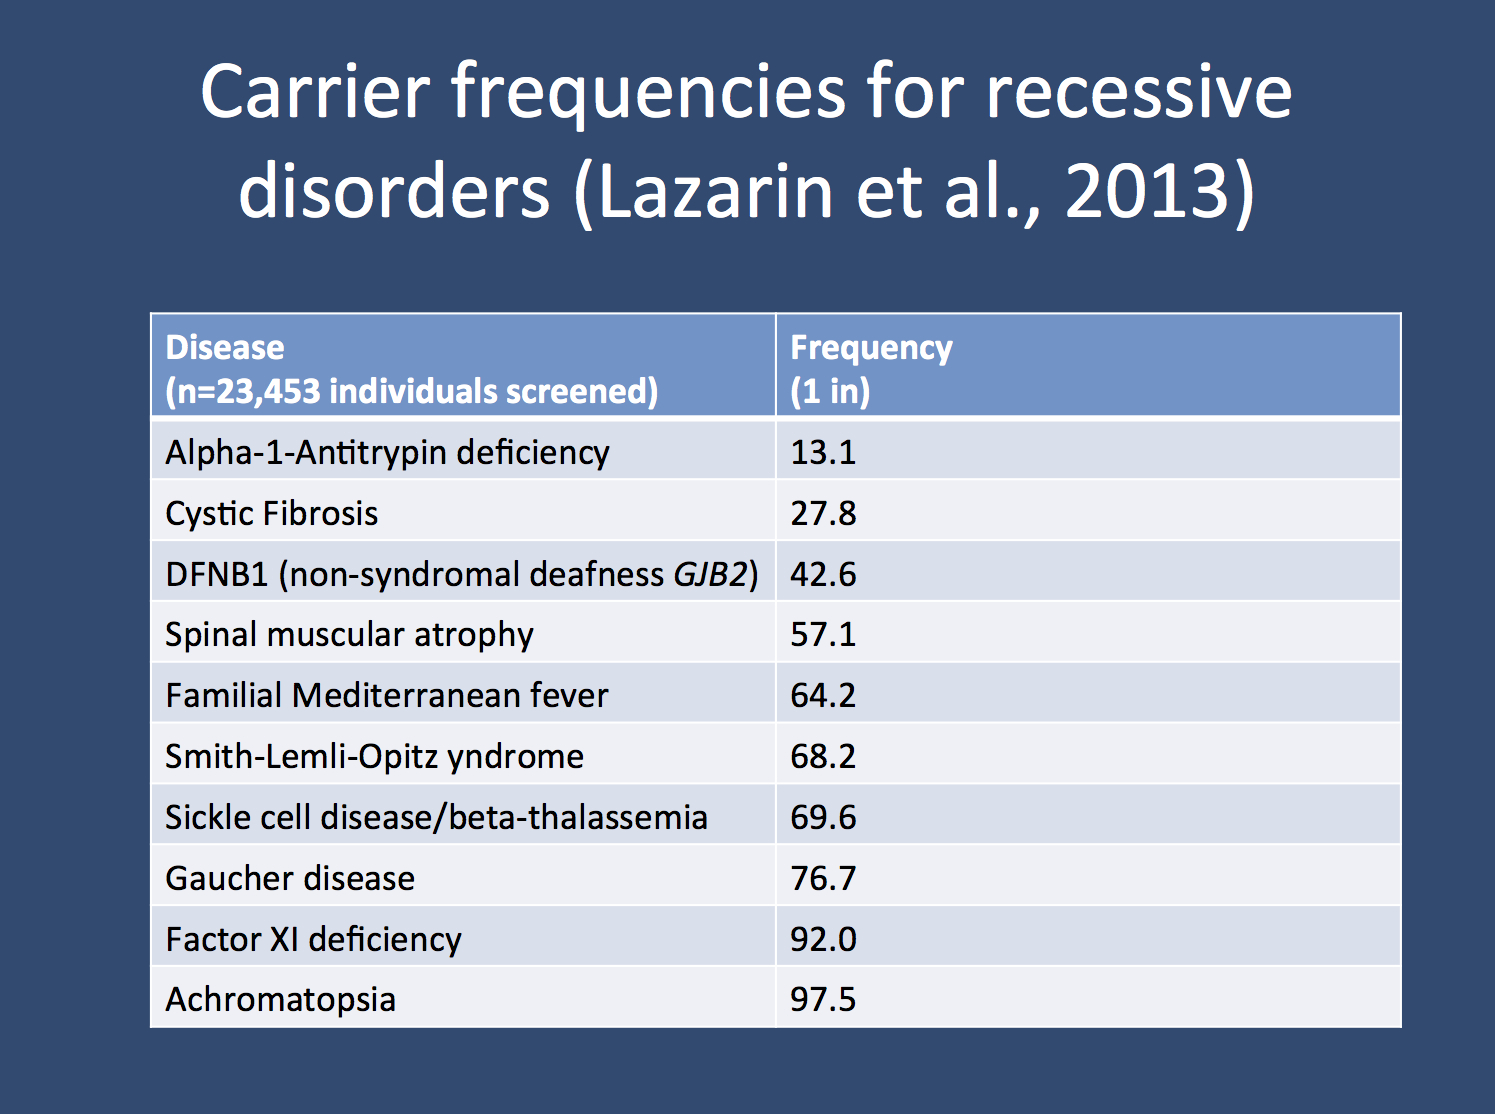 The 10 most common diseases screened for with the Counsyl array based on the paper by Lazarin and colleagues. The frequency (1 in) might be slightly unusual, as we normally deal with percentages, but it is represented in a way that is used in genetic counseling.